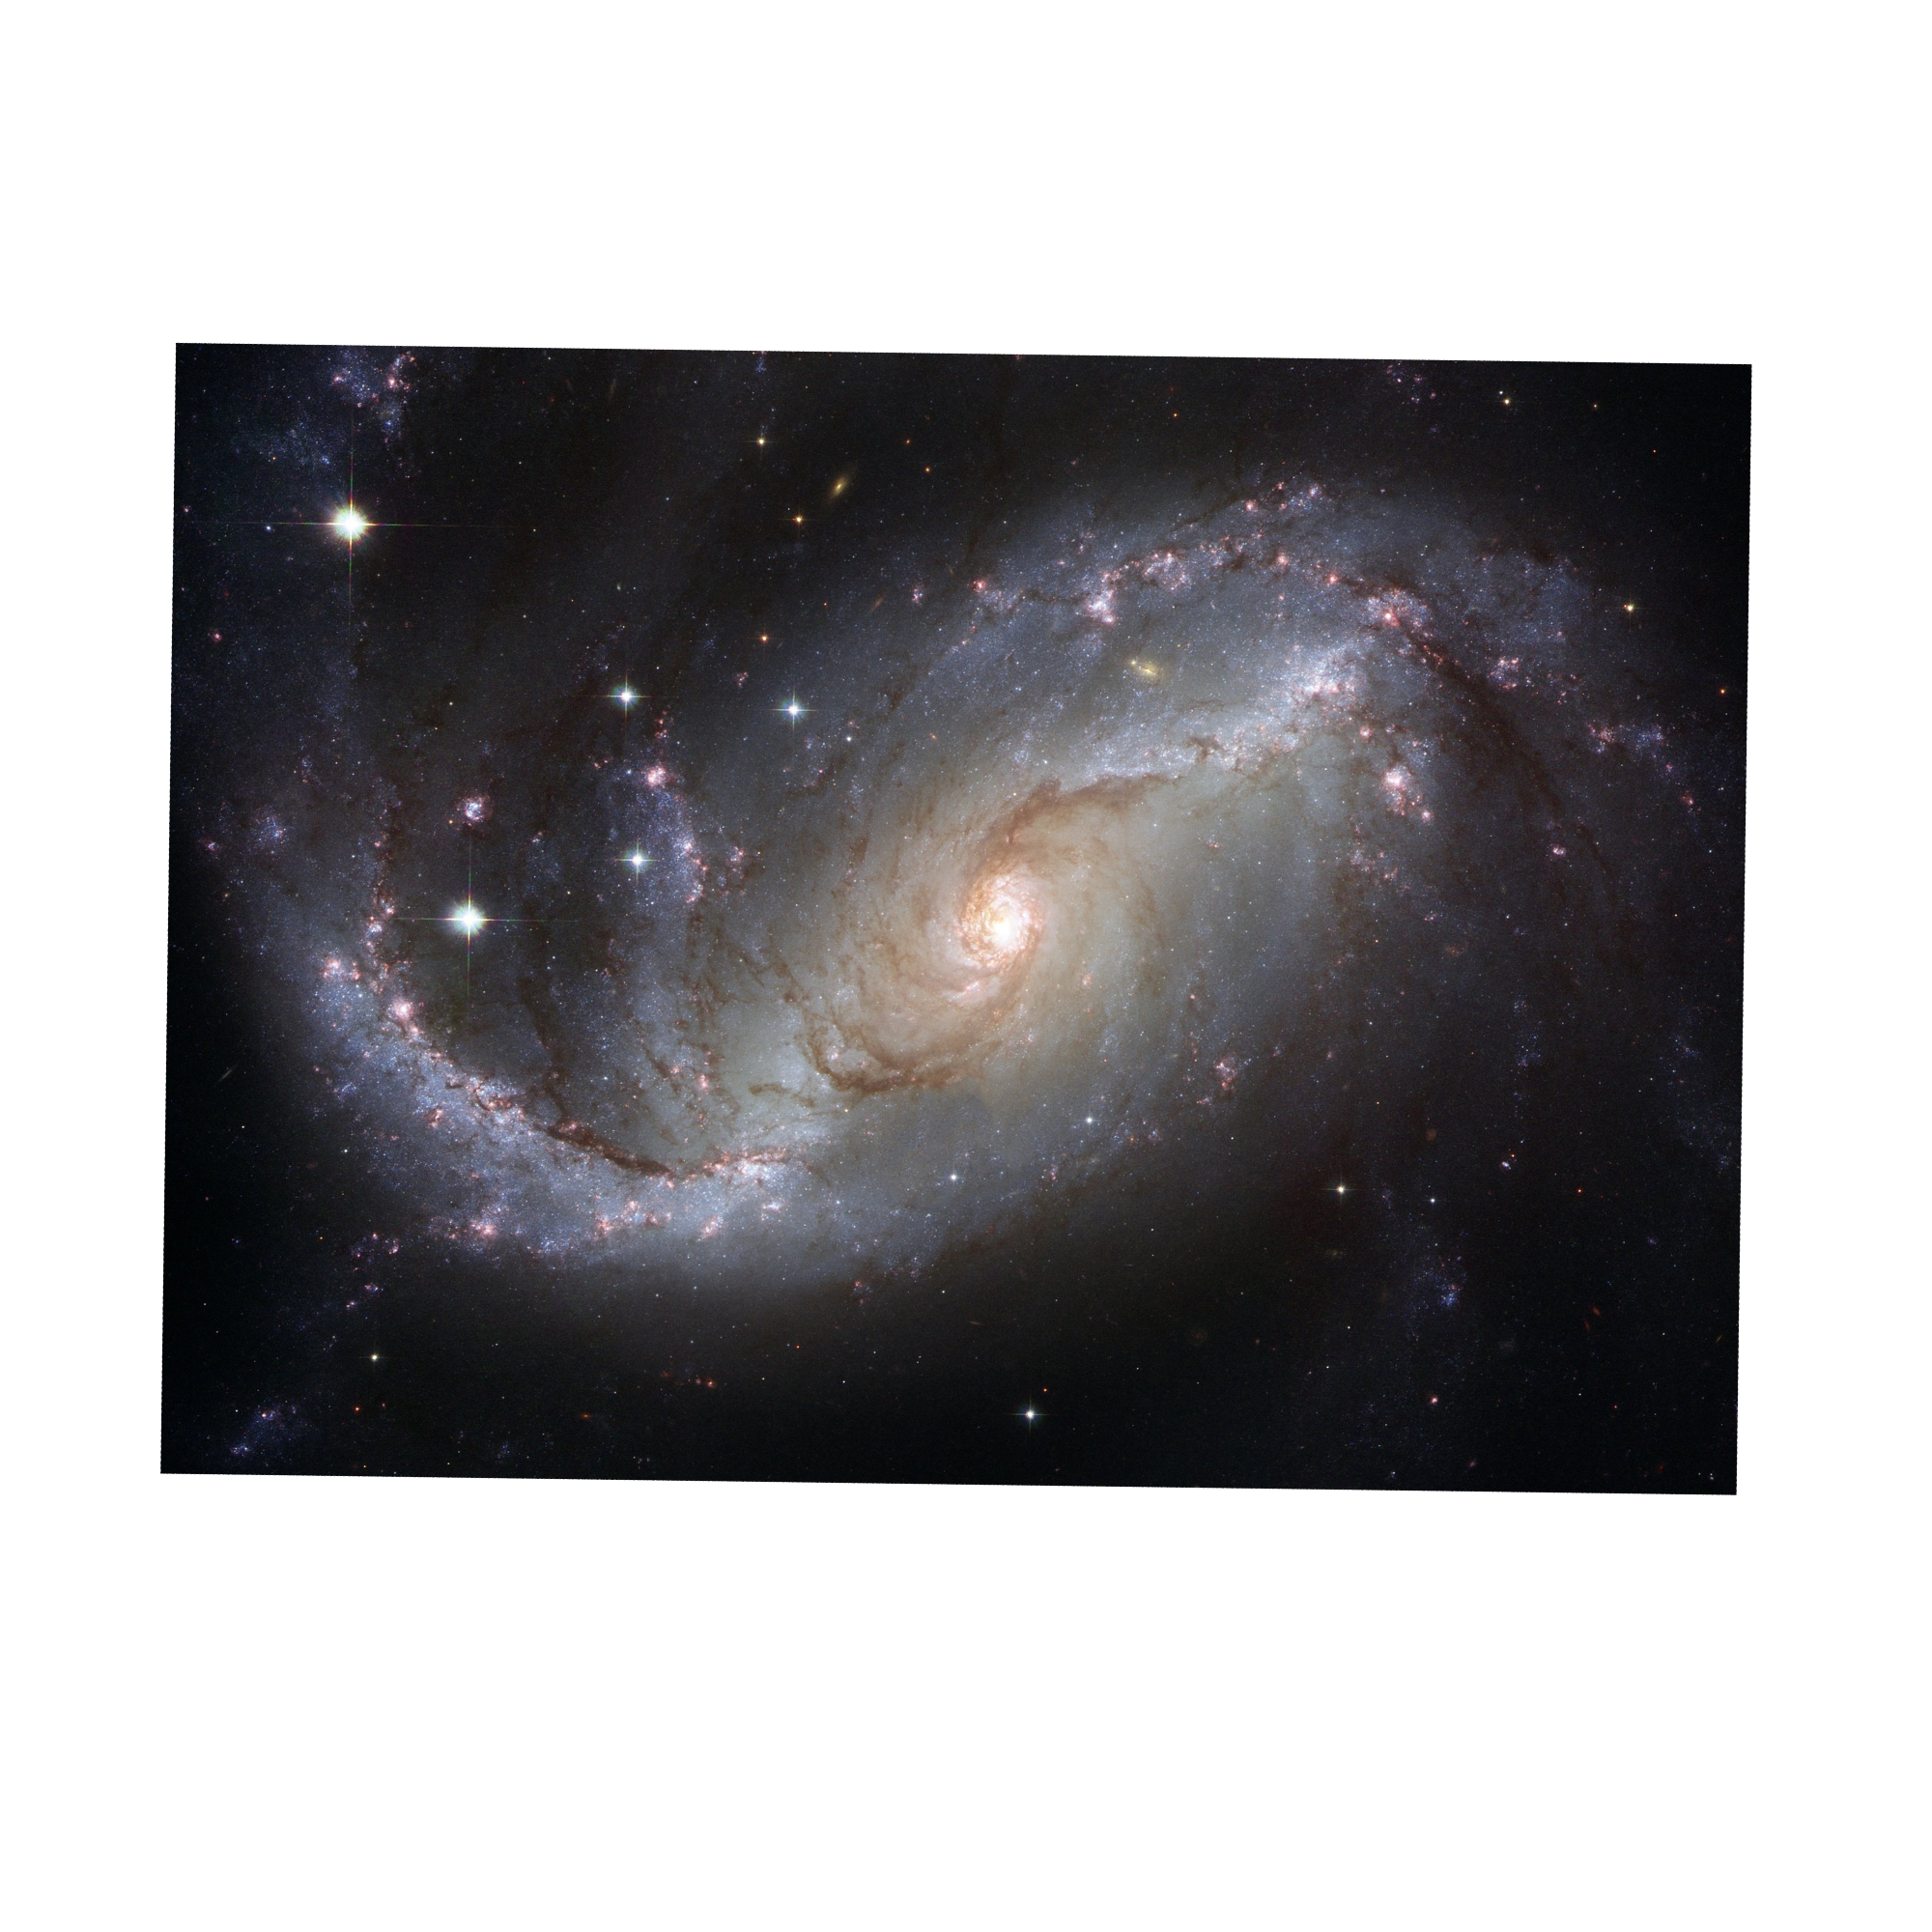 Outer space png. Astronomy hubble telescope galaxy